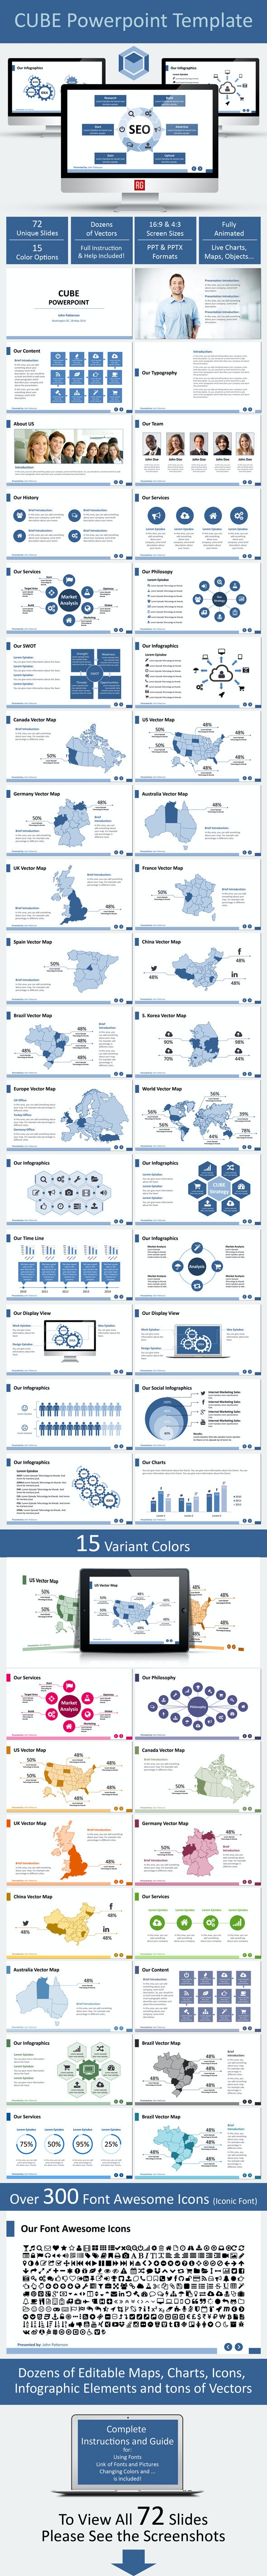 Cube Powerpoint Template - Business PowerPoint Templates